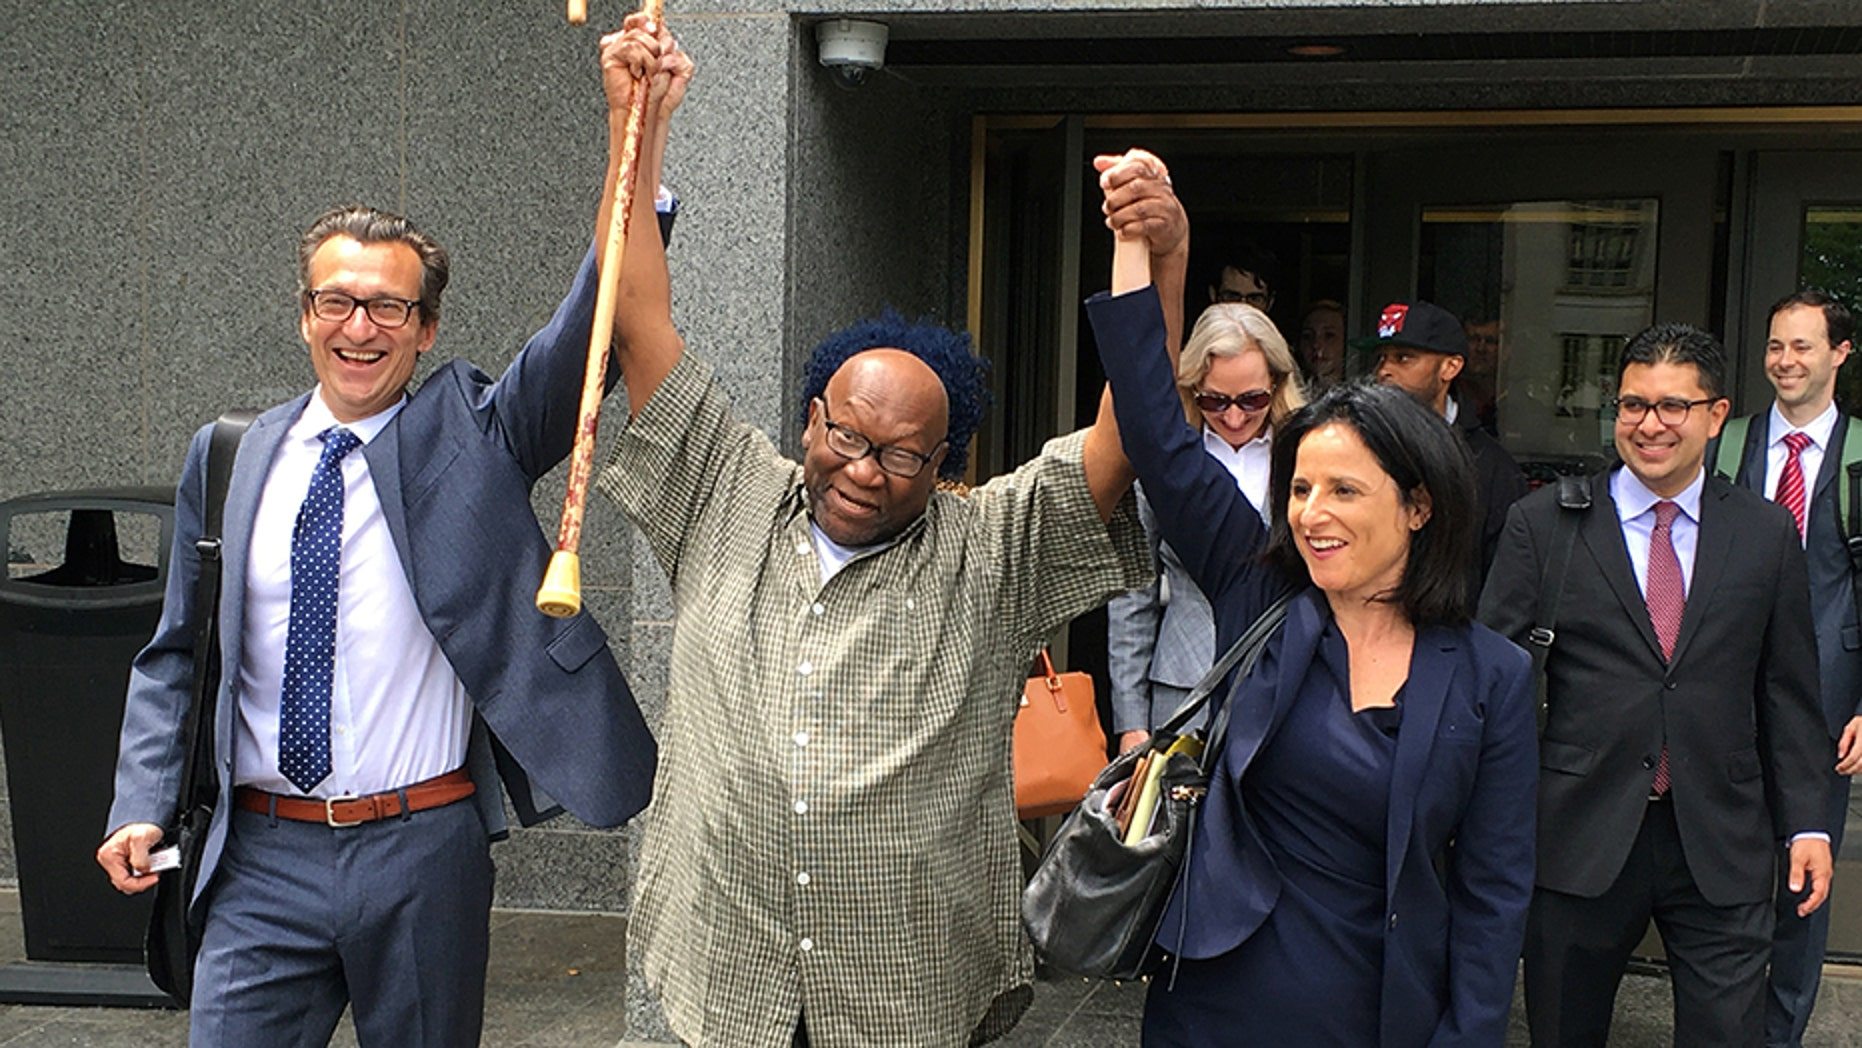 Alfred Swinton and his lawyers walk out of Superior Court in Hartford, Conn., Thursday, June 8, 2017, after a judge dismissed his murder conviction in a 1991 killing. Swinton was released and will be under house arrest while the murder charge remains pending. New DNA testing showed he wasn't the source of bite marks on the victim's body. (AP Photo/Dave Collins)